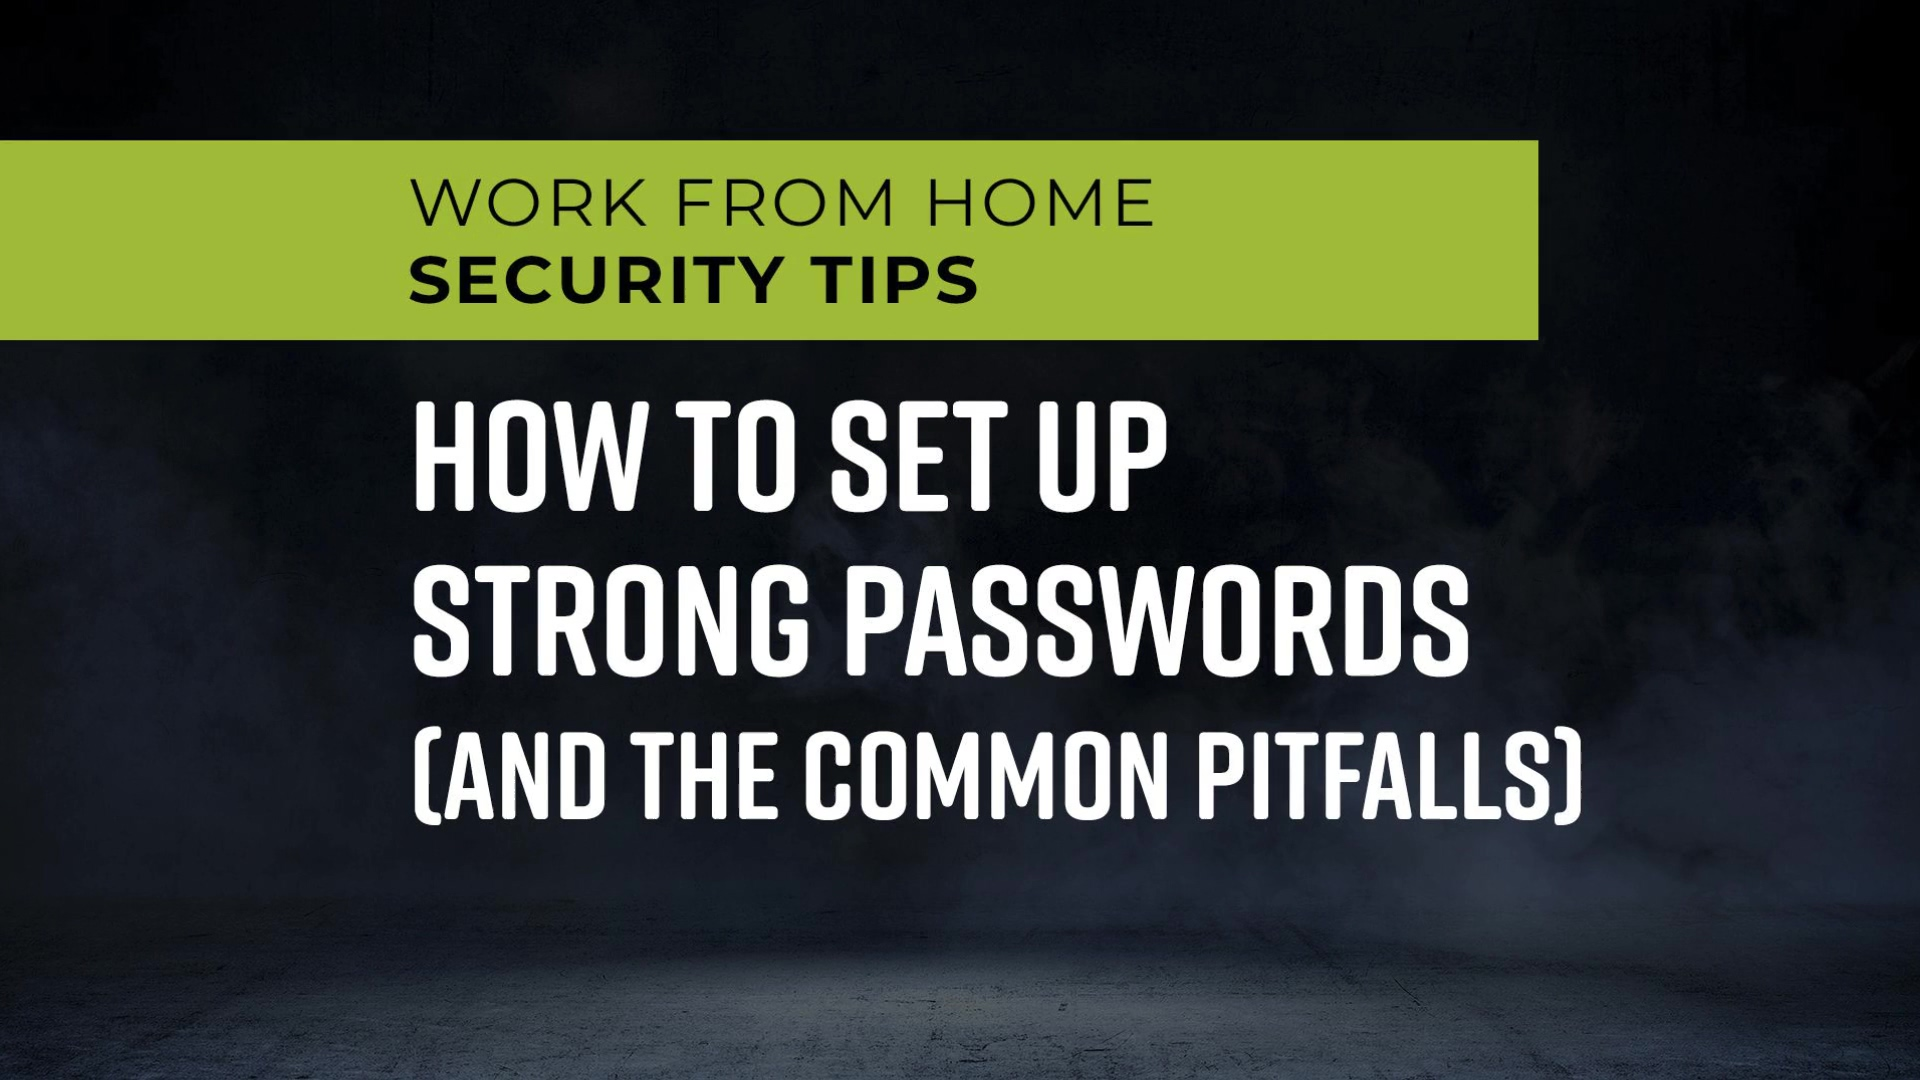 Work_From_Home_Security_Tips_-_How_to_Set_Up_Strong_Passwords_and_the_Common_Pitfalls_1080p